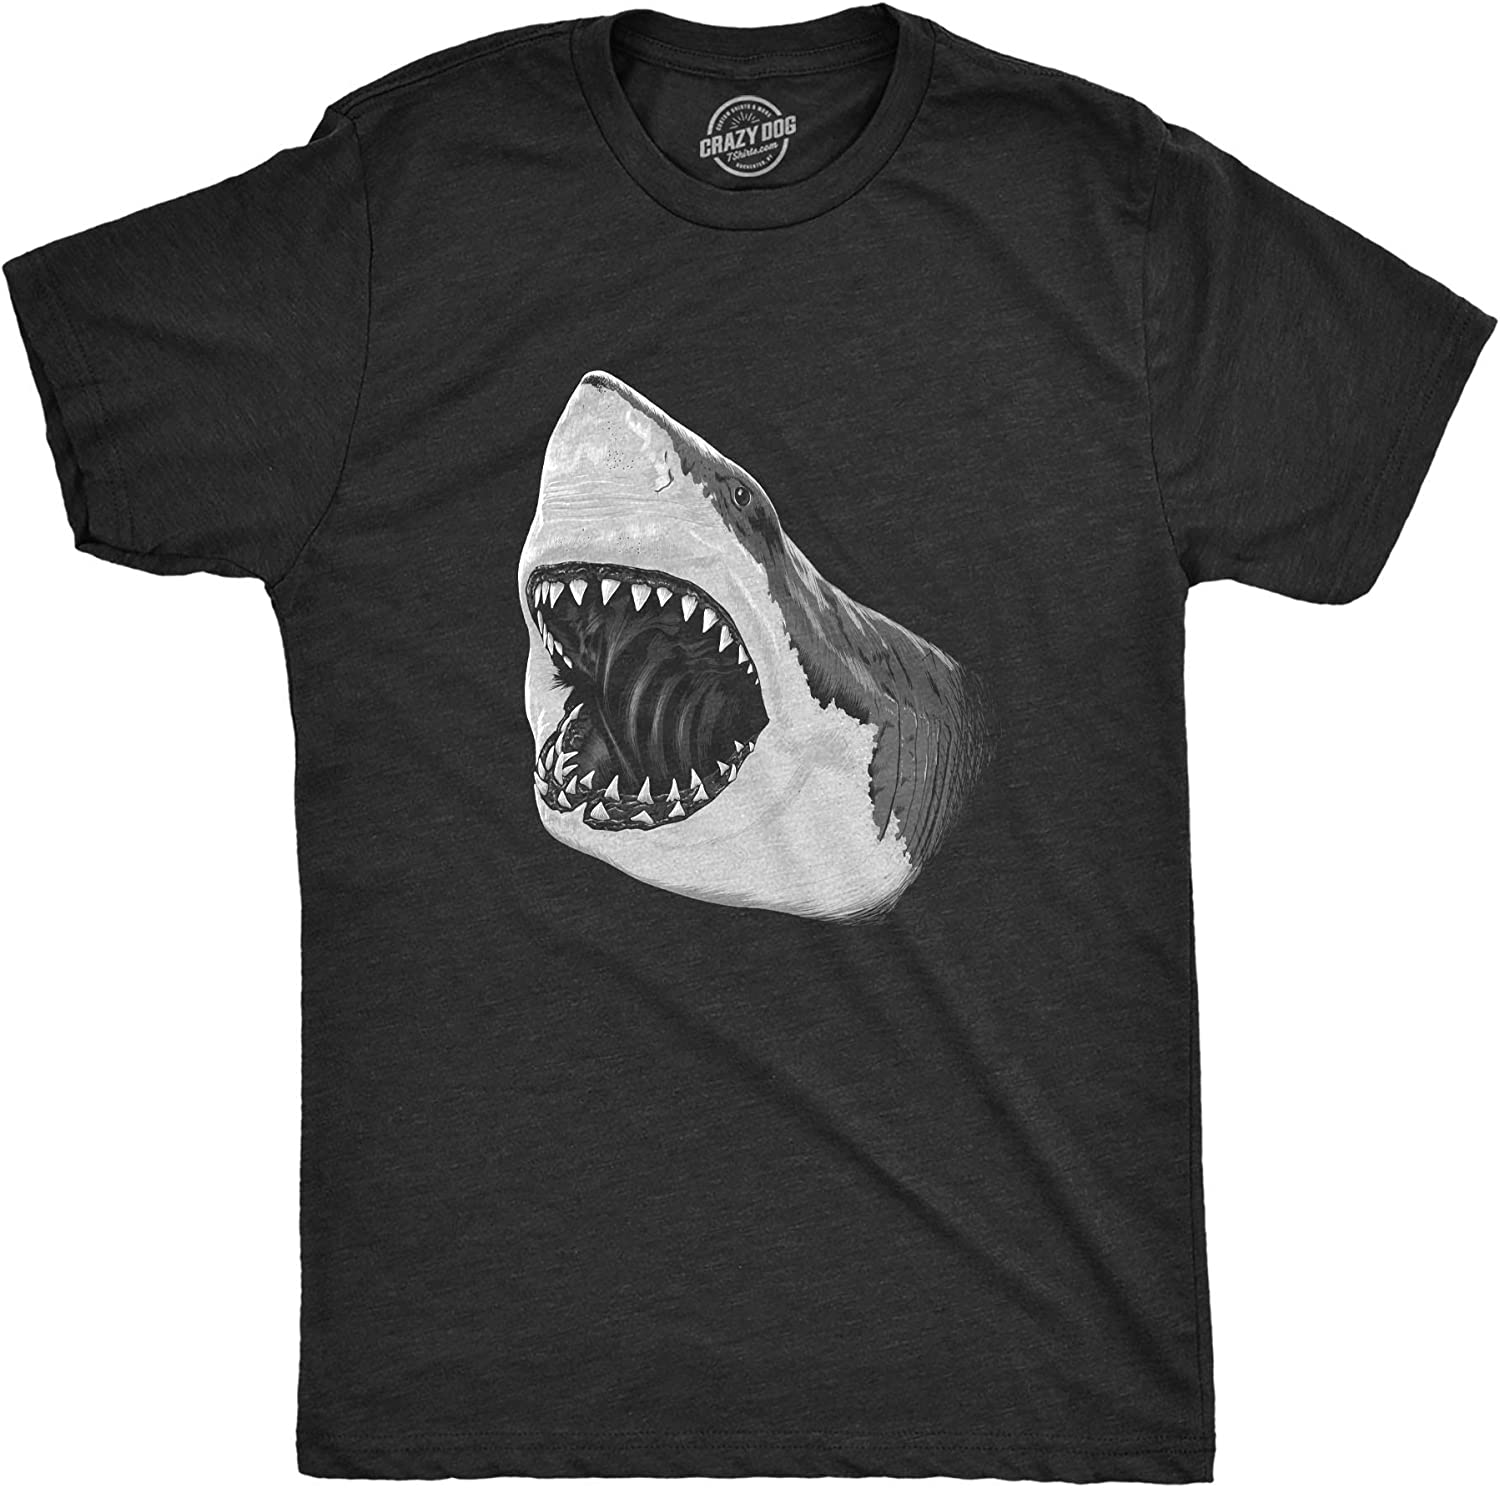 Mens Great White Shark T Shirt Pearly Teeth Jaws Attacking Cool Graphic Tee (Heather Black) - 5XL